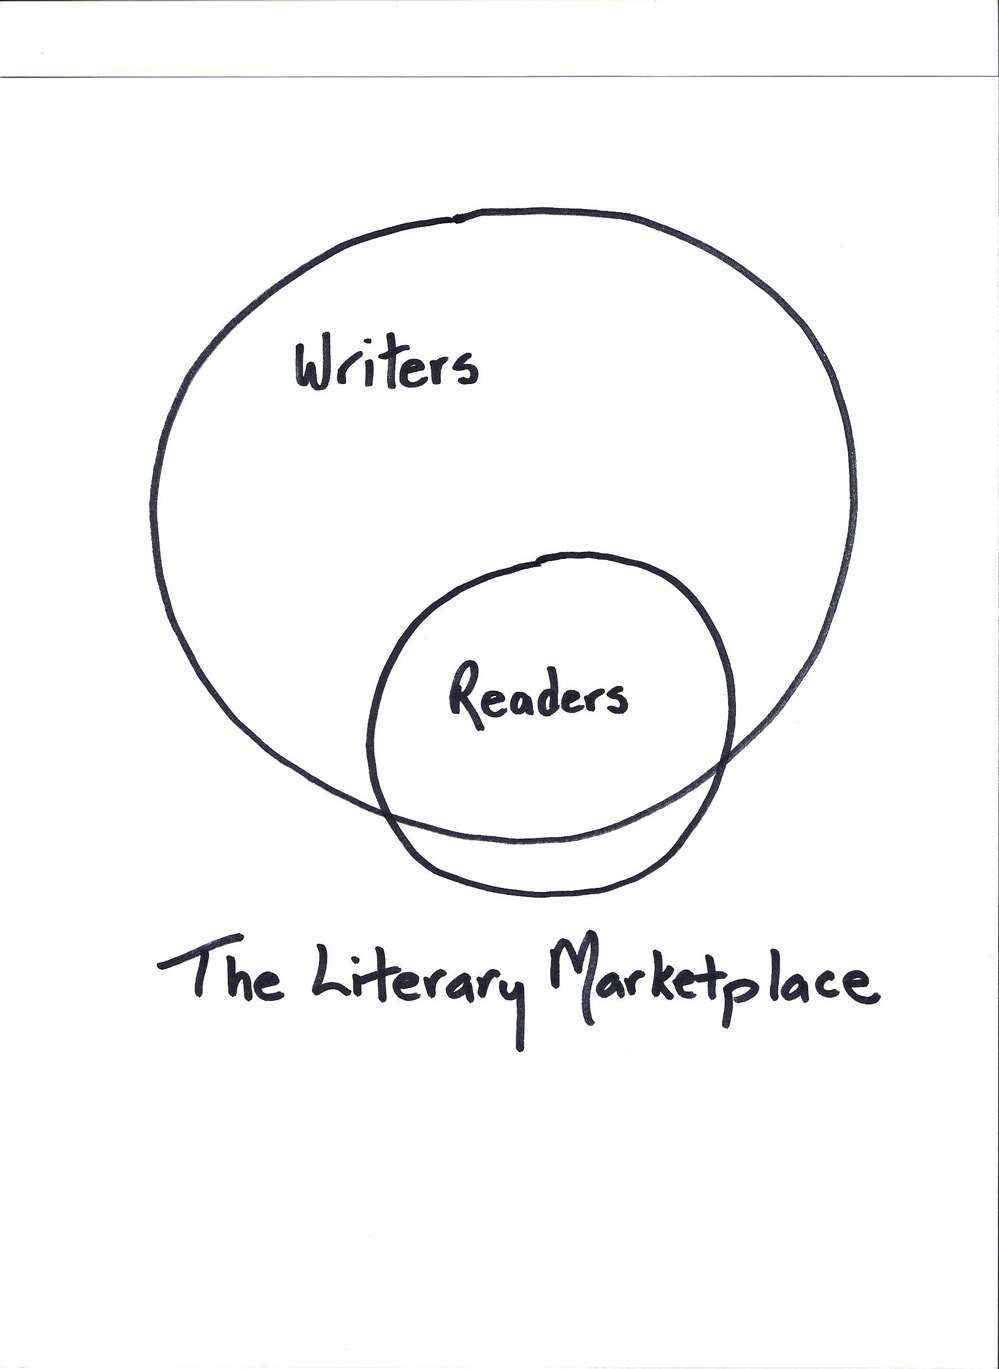 Writers, Readers, Literature, Publishing